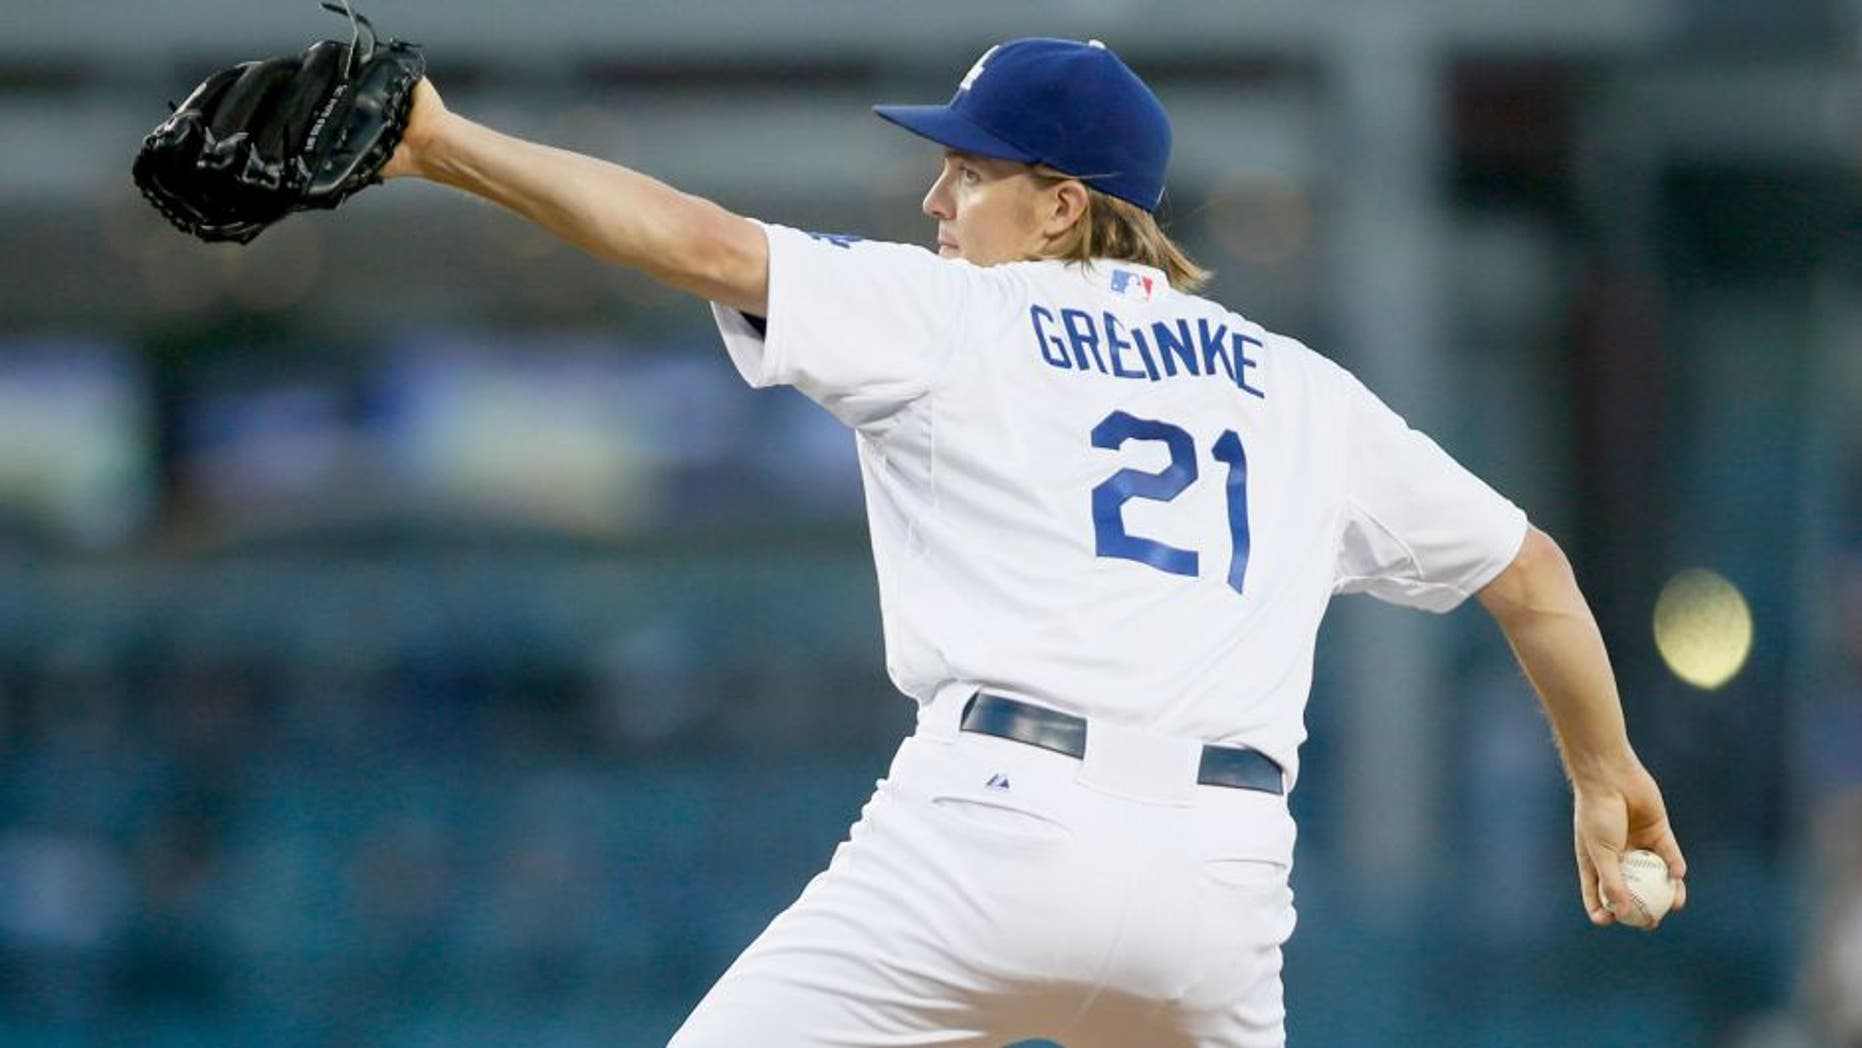 Los Angeles Dodgers starting pitcher Zack Greinke delivers against the San Diego Padres during the second inning of a baseball game Saturday, Oct. 3, 2015, in Los Angeles. (AP Photo/Danny Moloshok)